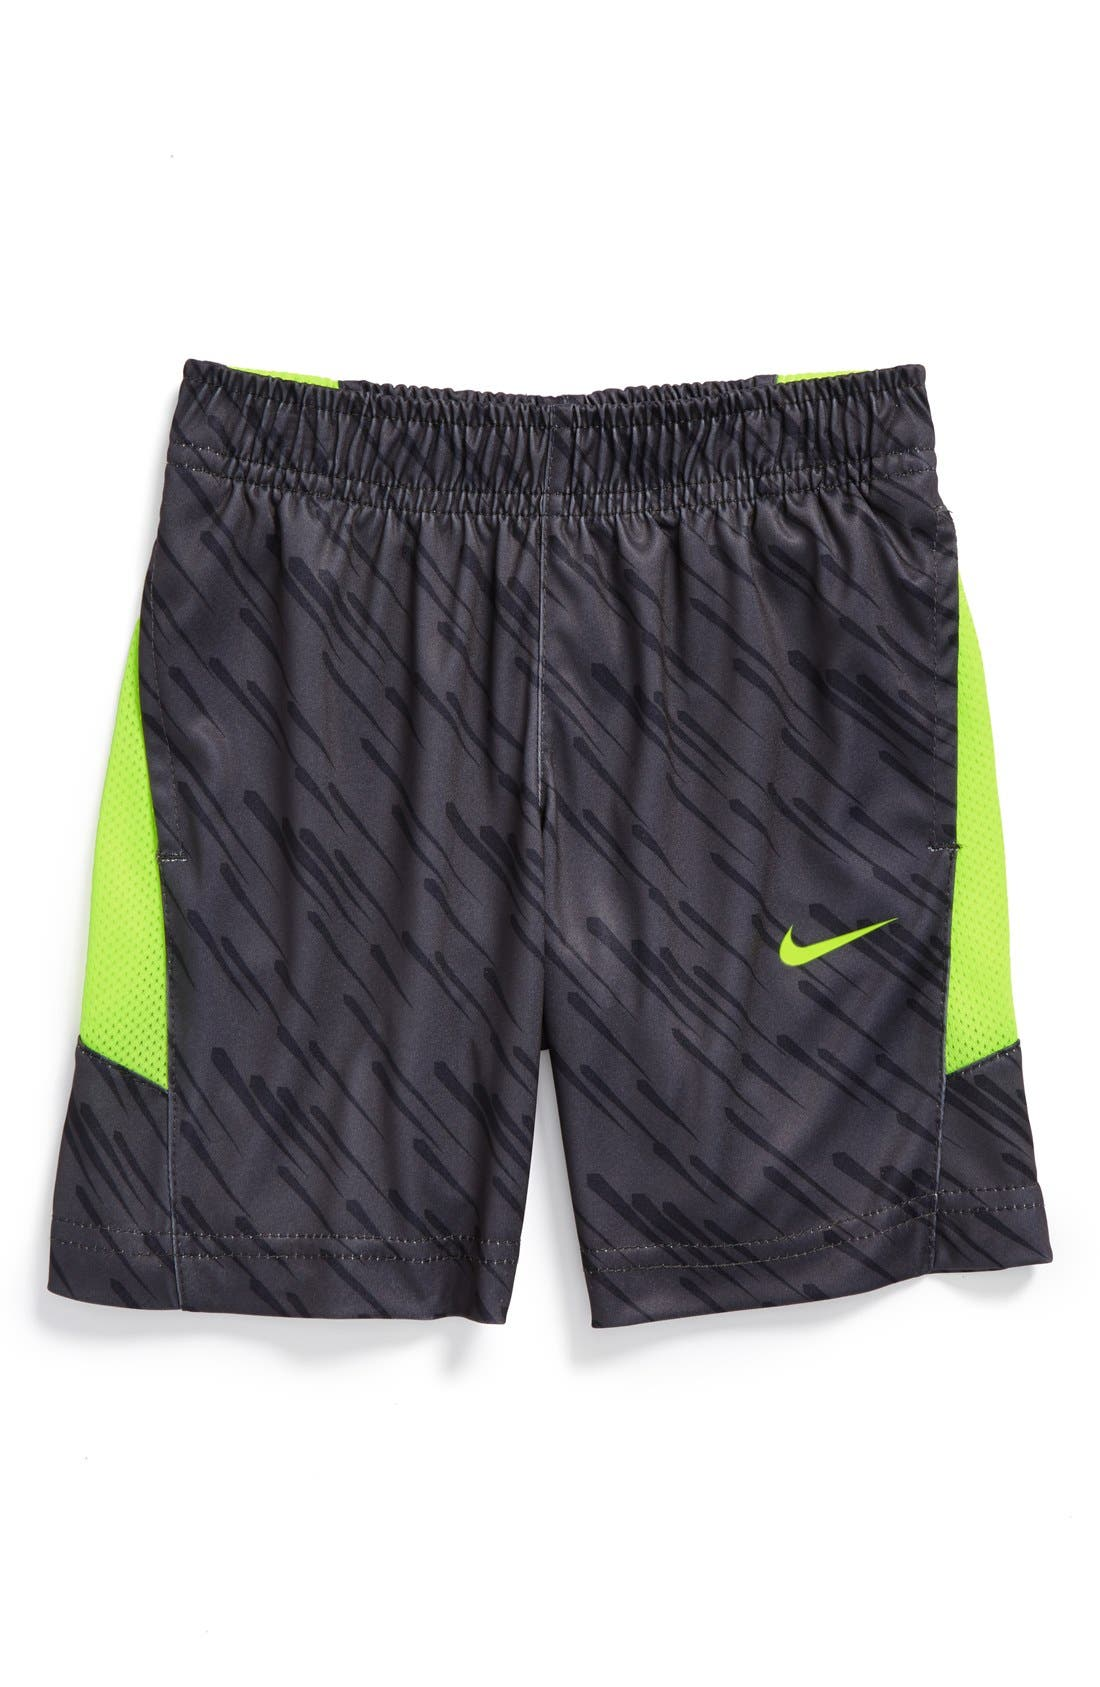 Alternate Image 1 Selected - Nike 'Speed GFX' Dri-FIT Shorts (Toddler Boys)